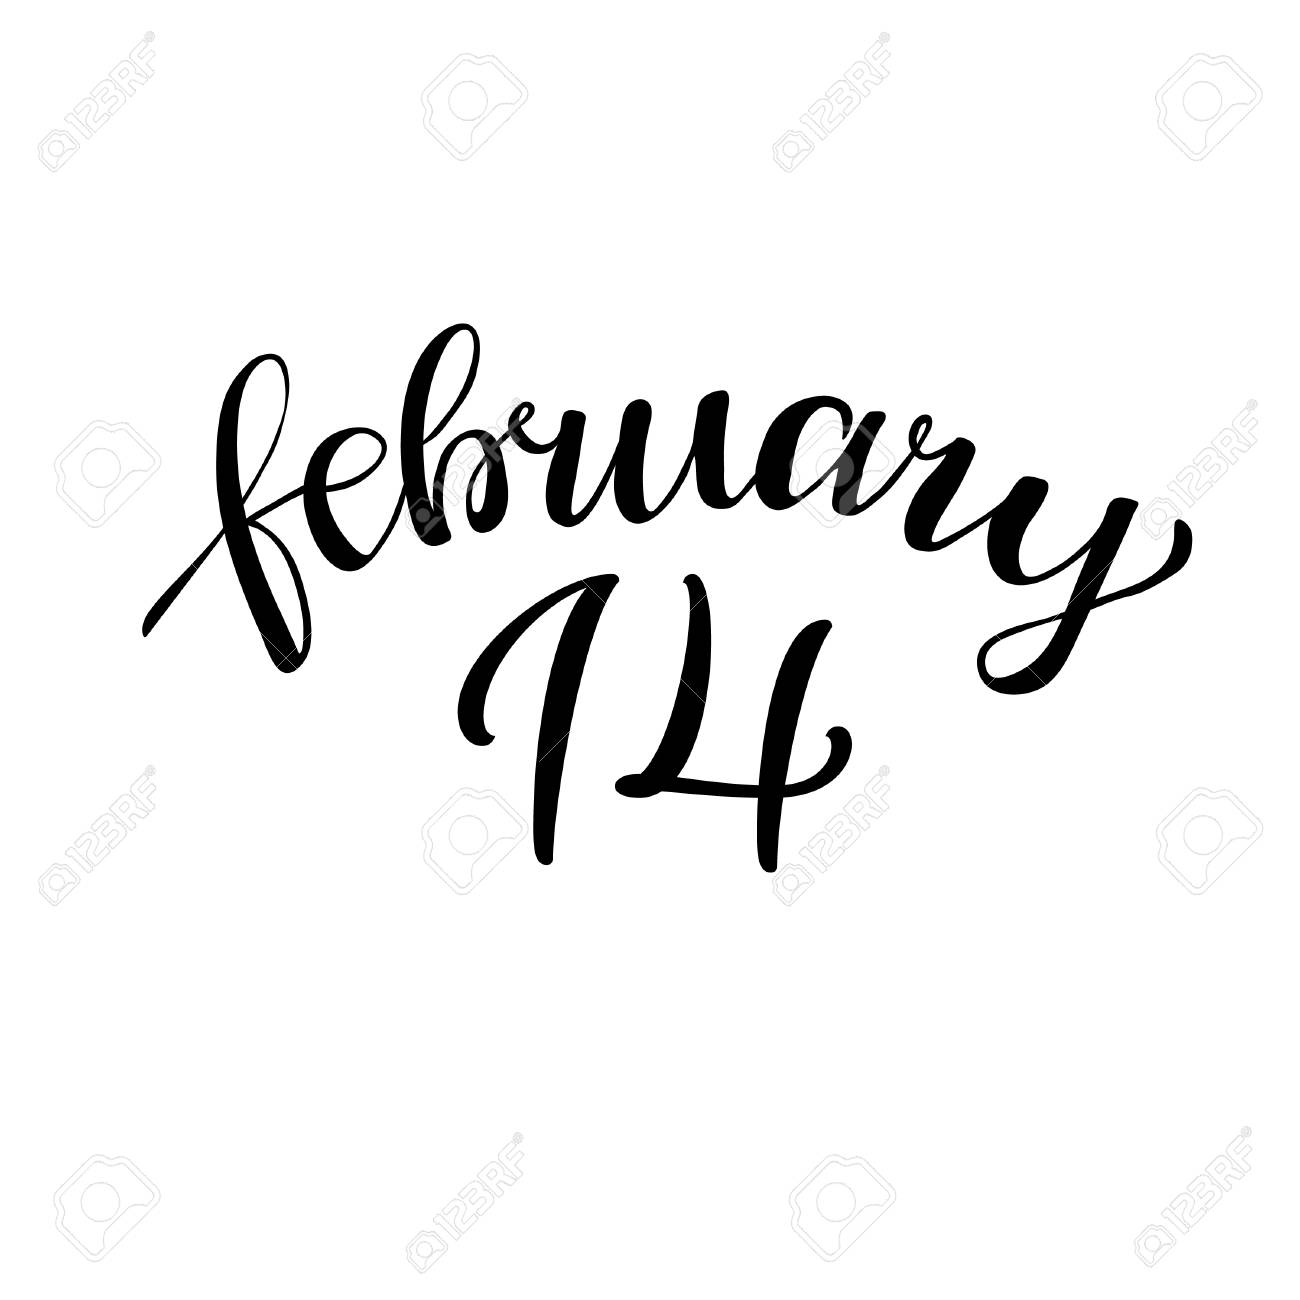 14 February Hand Lettering Vintage Quote Modern Calligraphy